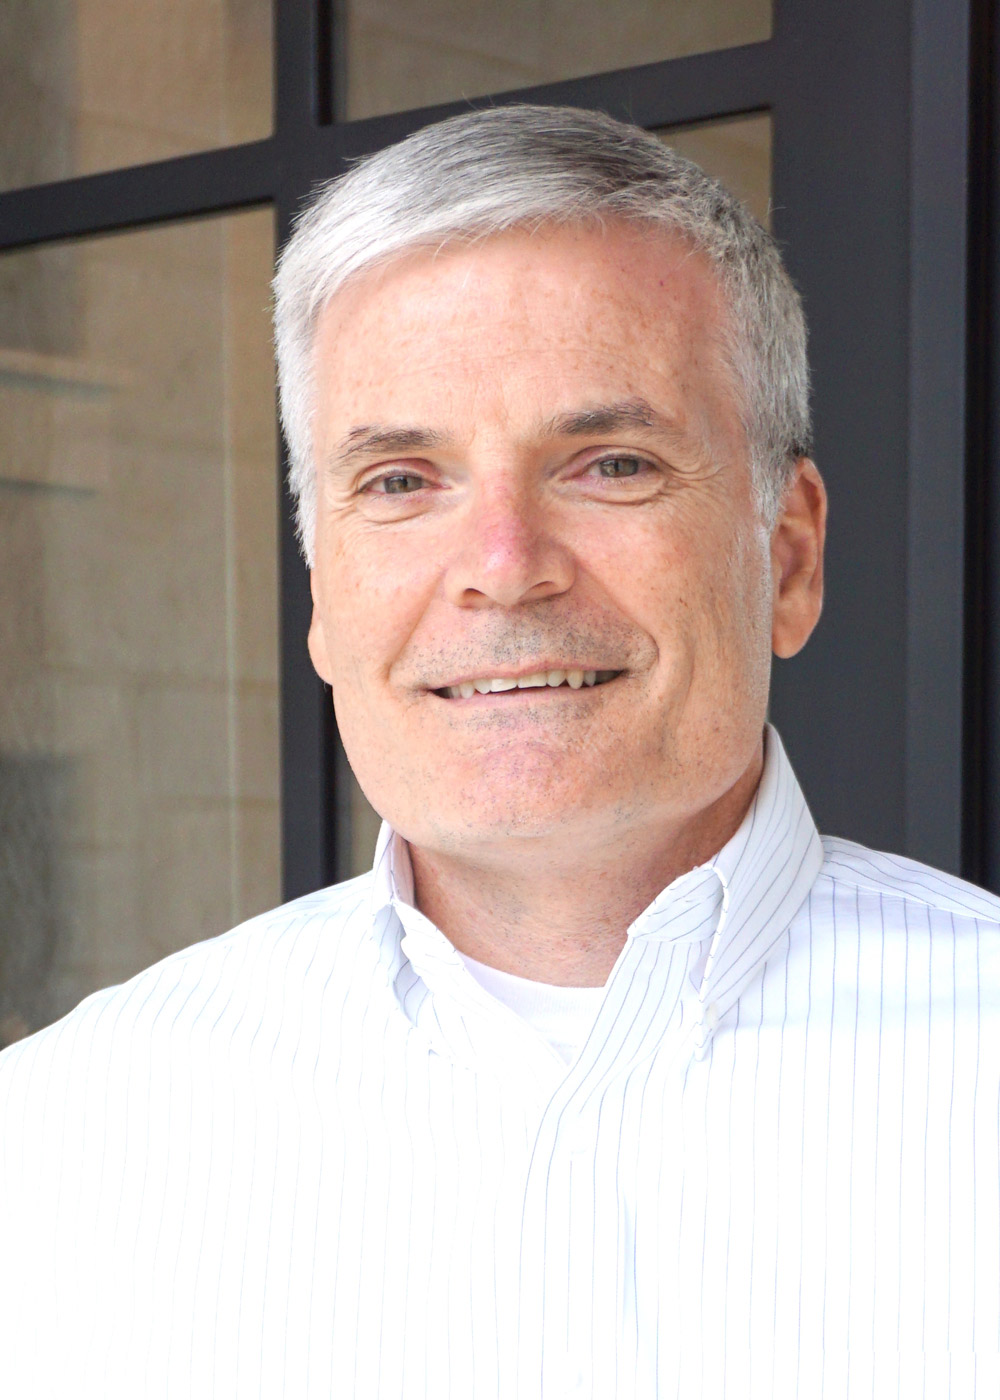 Dean Smith - VP of Sales at Lifestyle Custom Homes